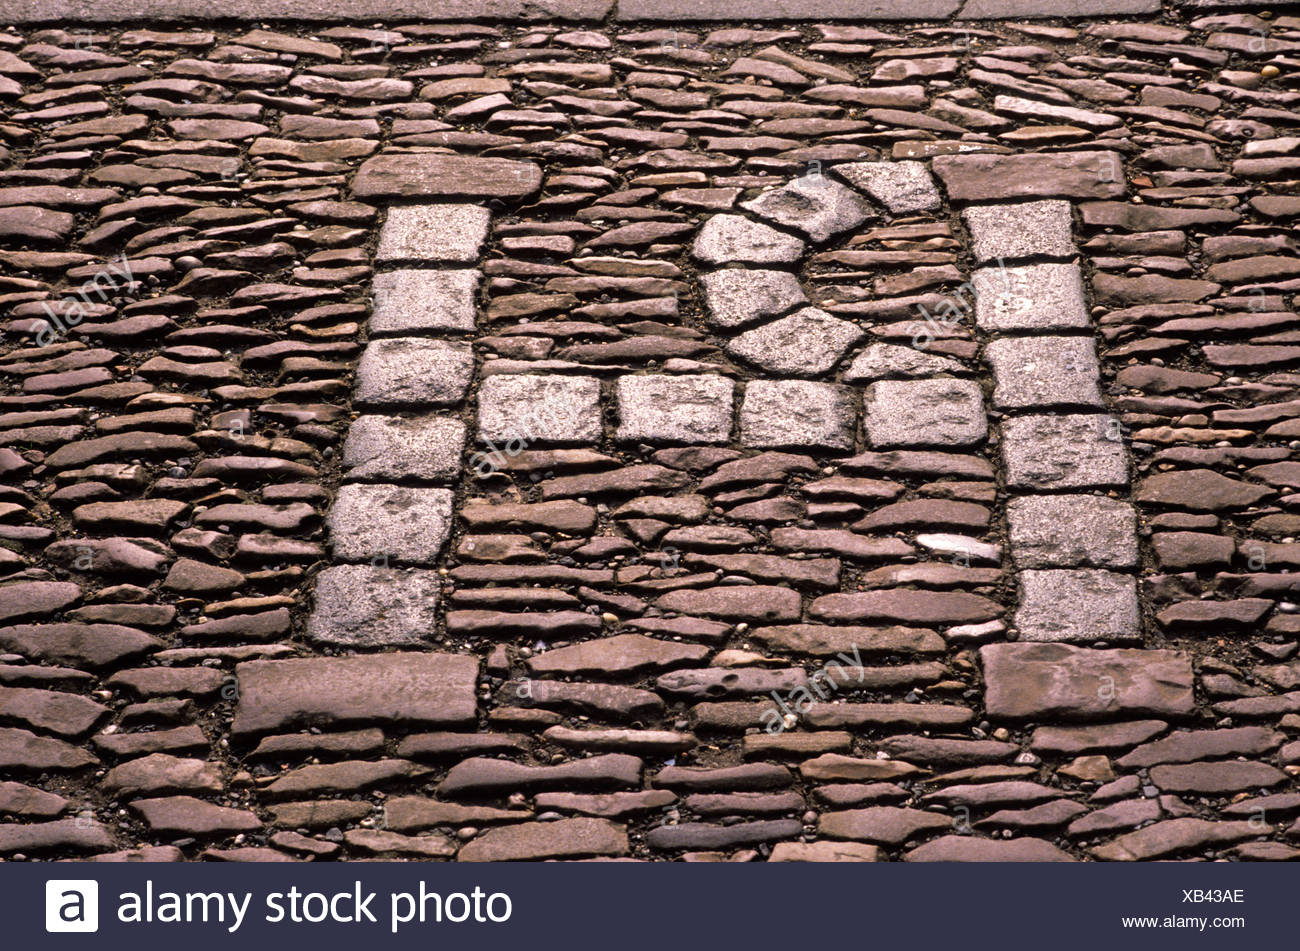 St. Andrews, Fife, Scotland, UK, initials of Patrick Hamilton on pavement, Scottish martyr, history - Stock Image